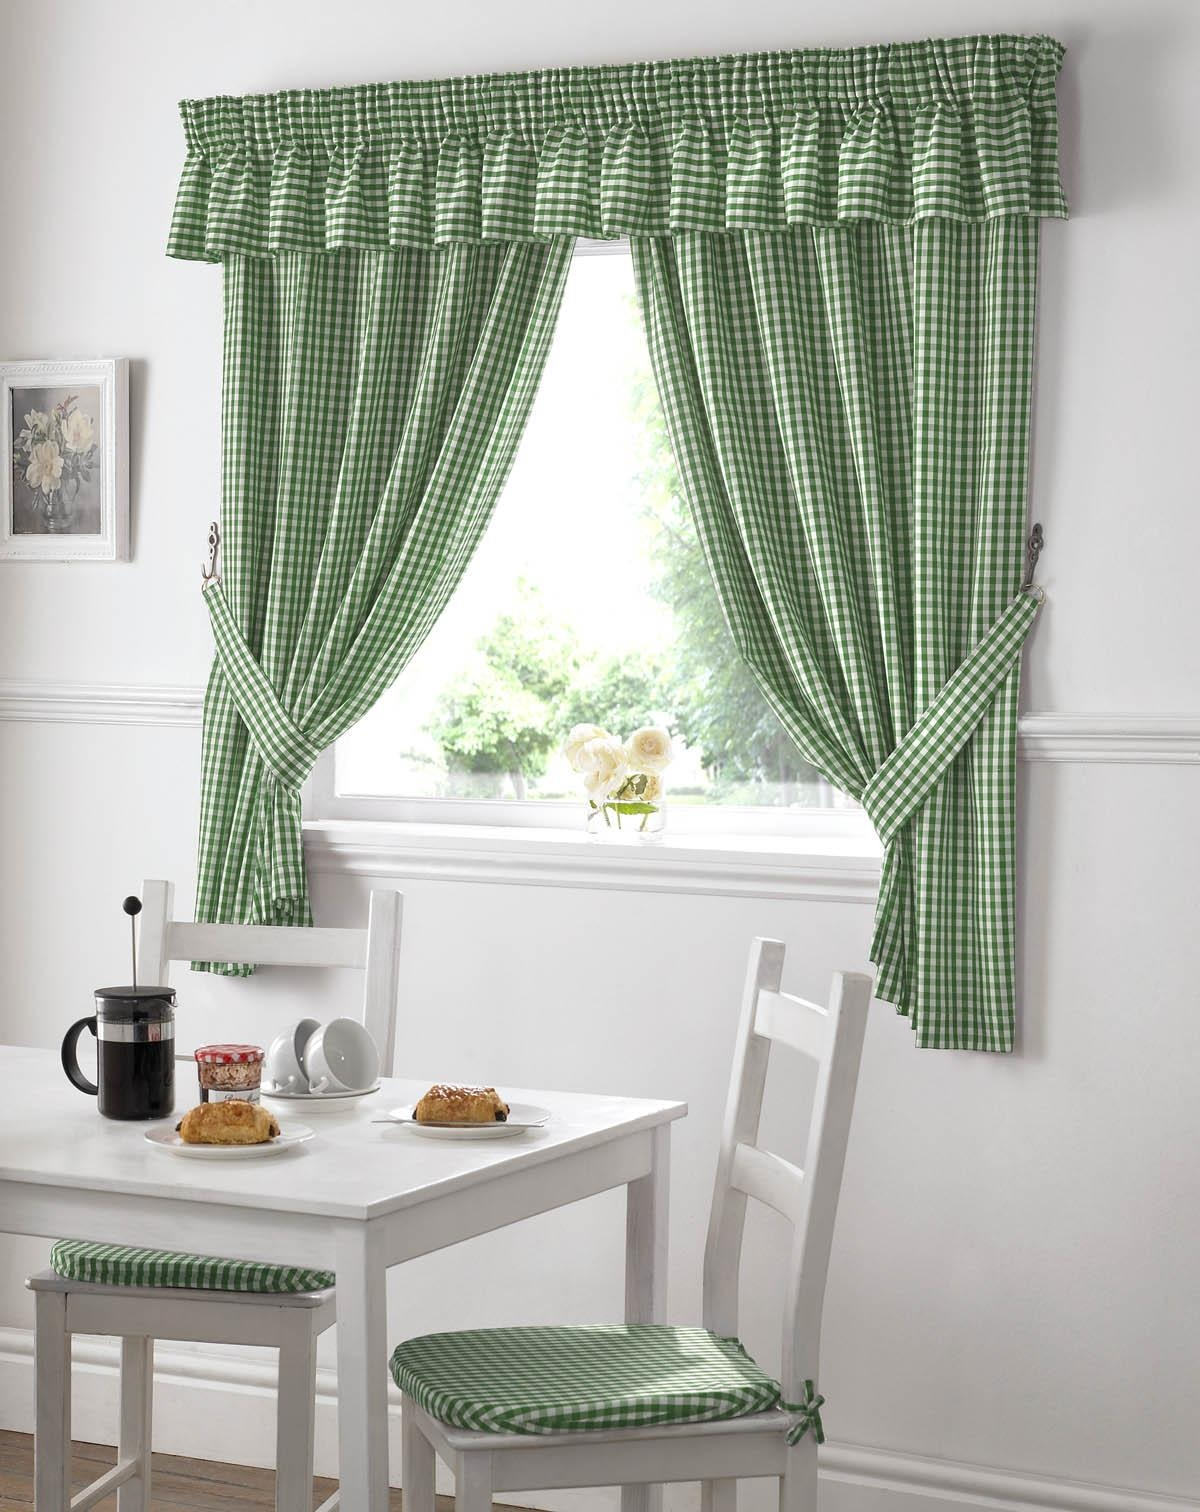 Decoration Kitchen Curtains Finally Mycuprunnethoverblog Green Pertaining To Sage Green Kitchen Curtains (Image 9 of 25)